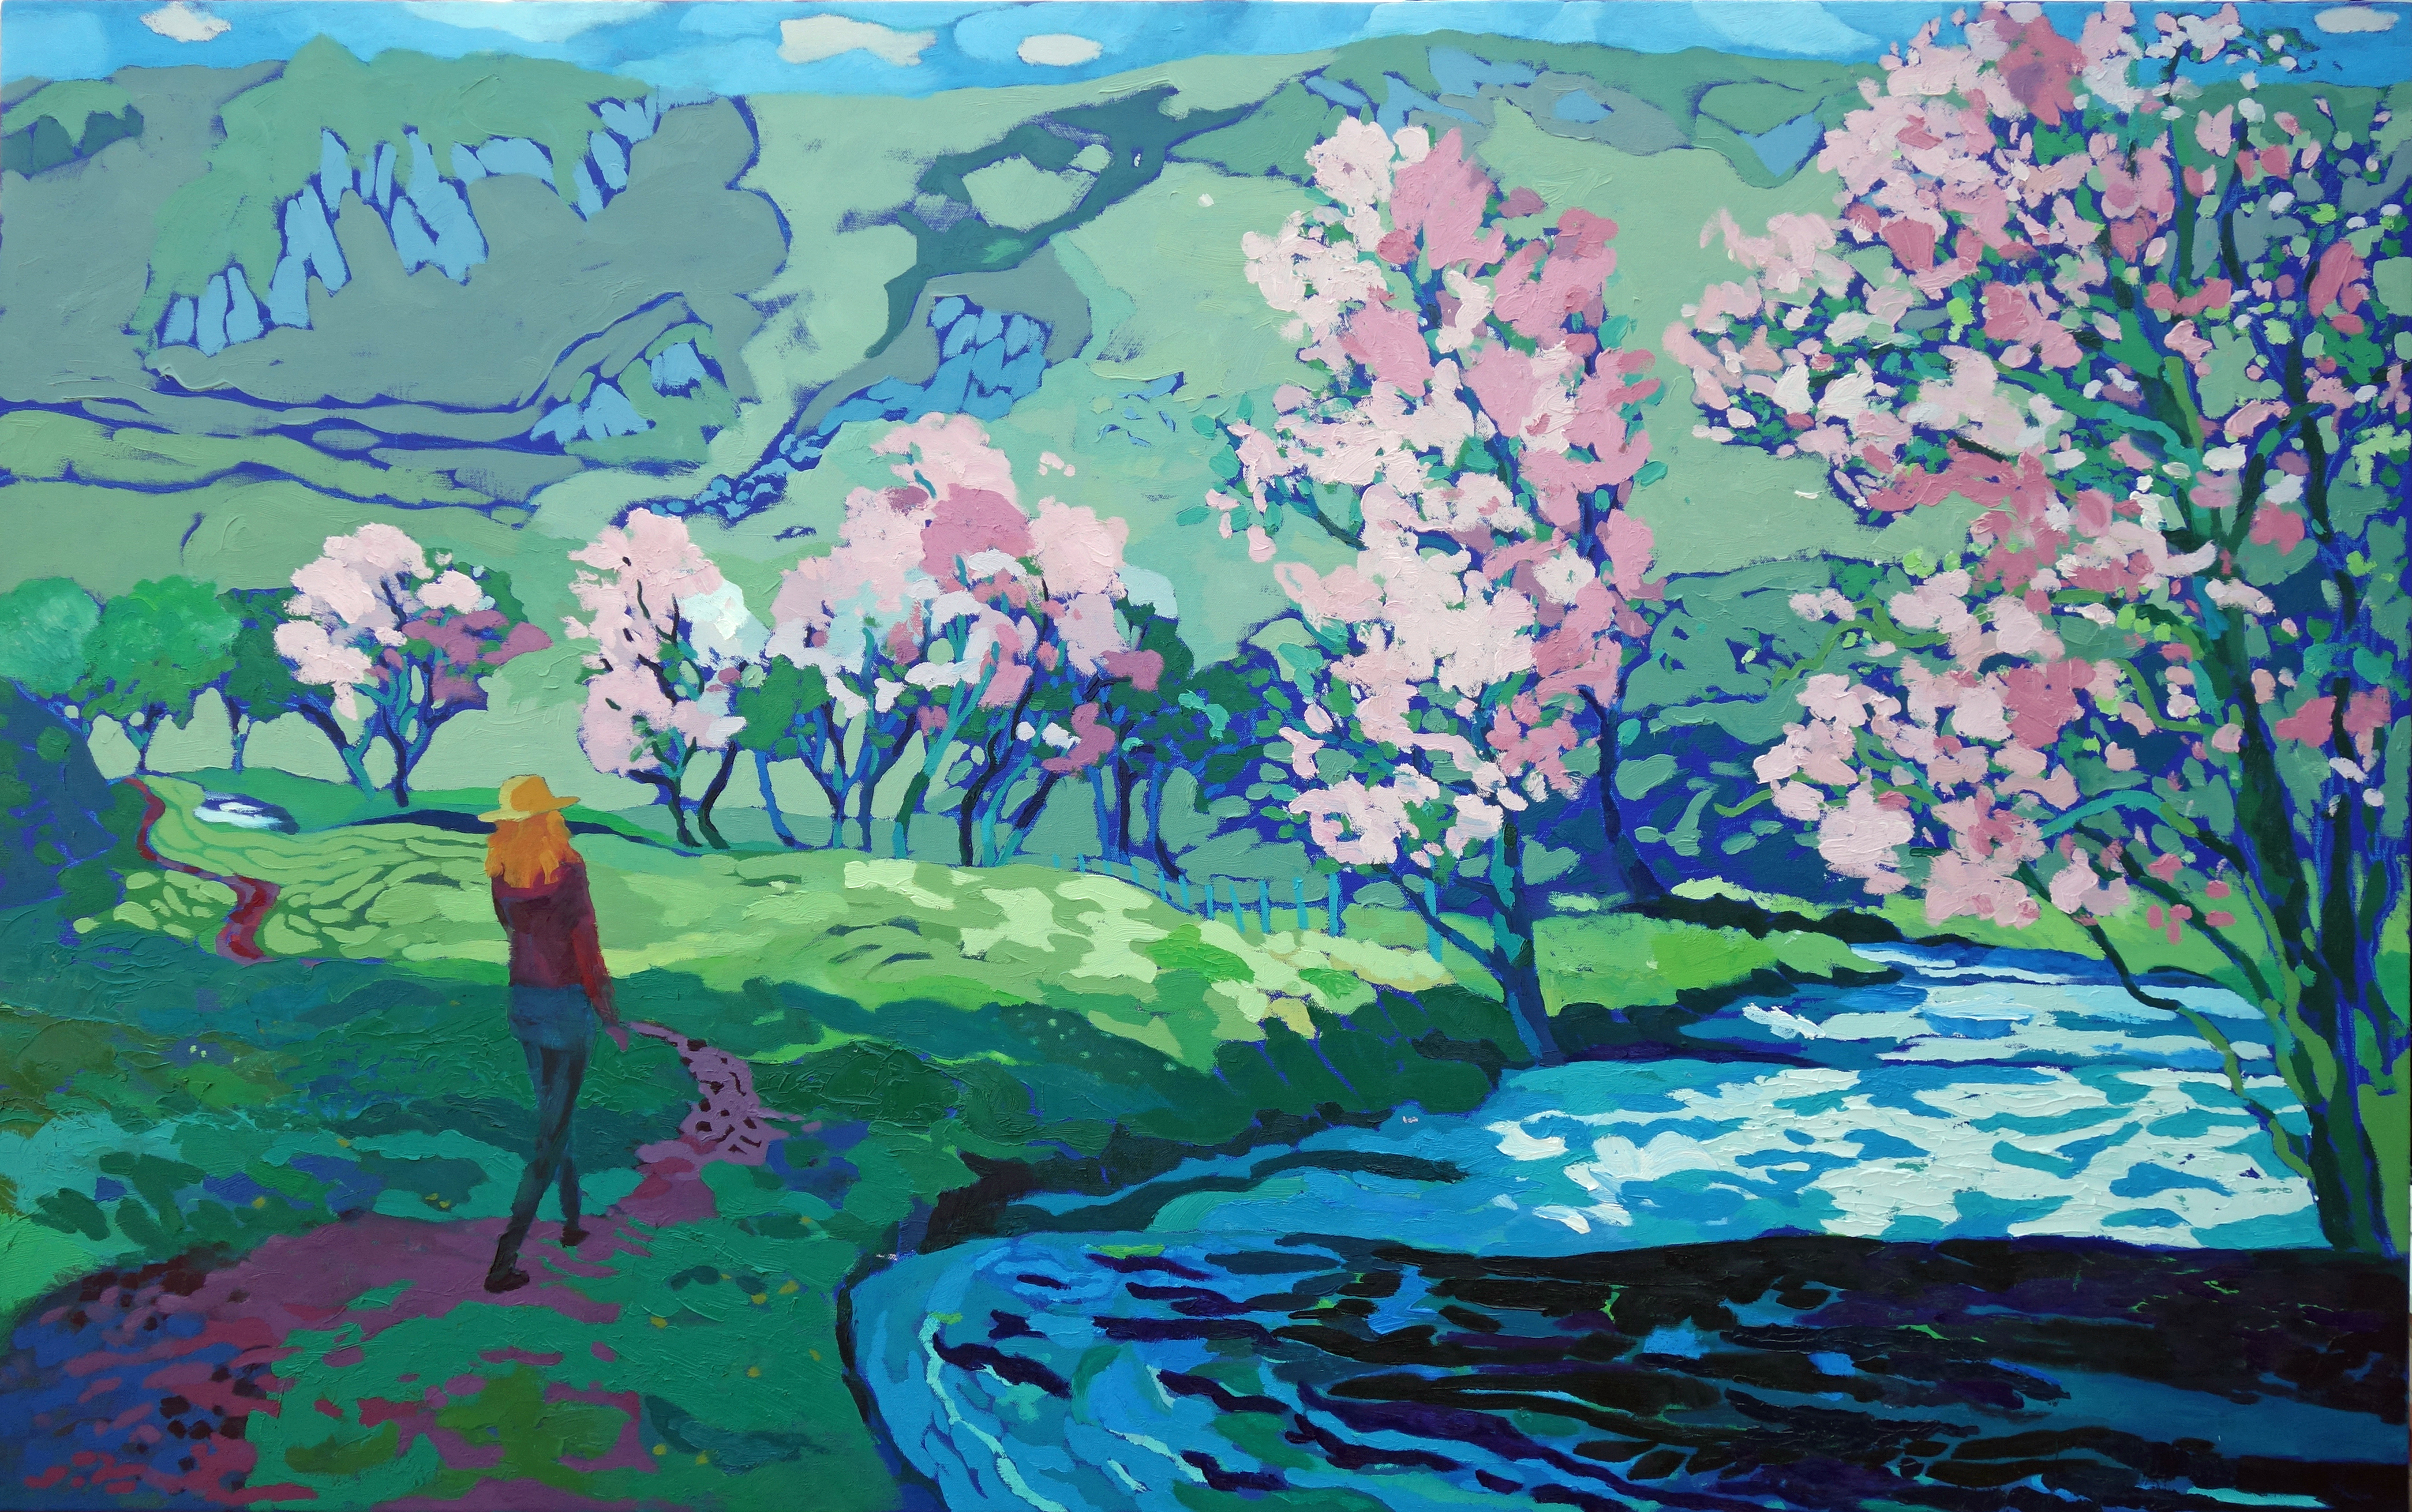 Blossom Trees, Sunny River. Oil on canvas. 100 x 161 cm.